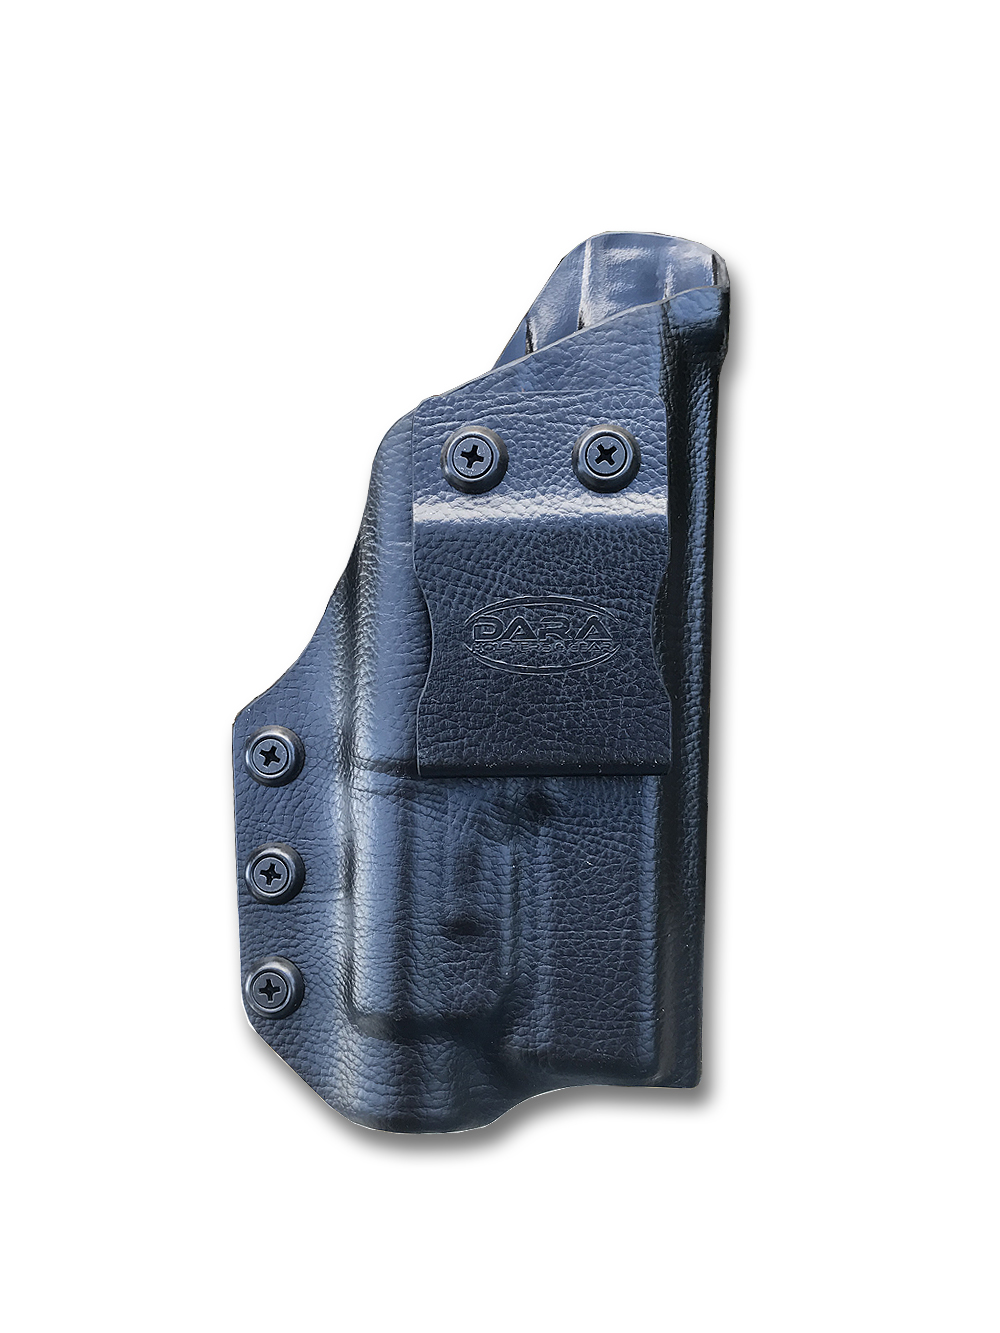 Glock 17 with TLR-1 IWB Holster